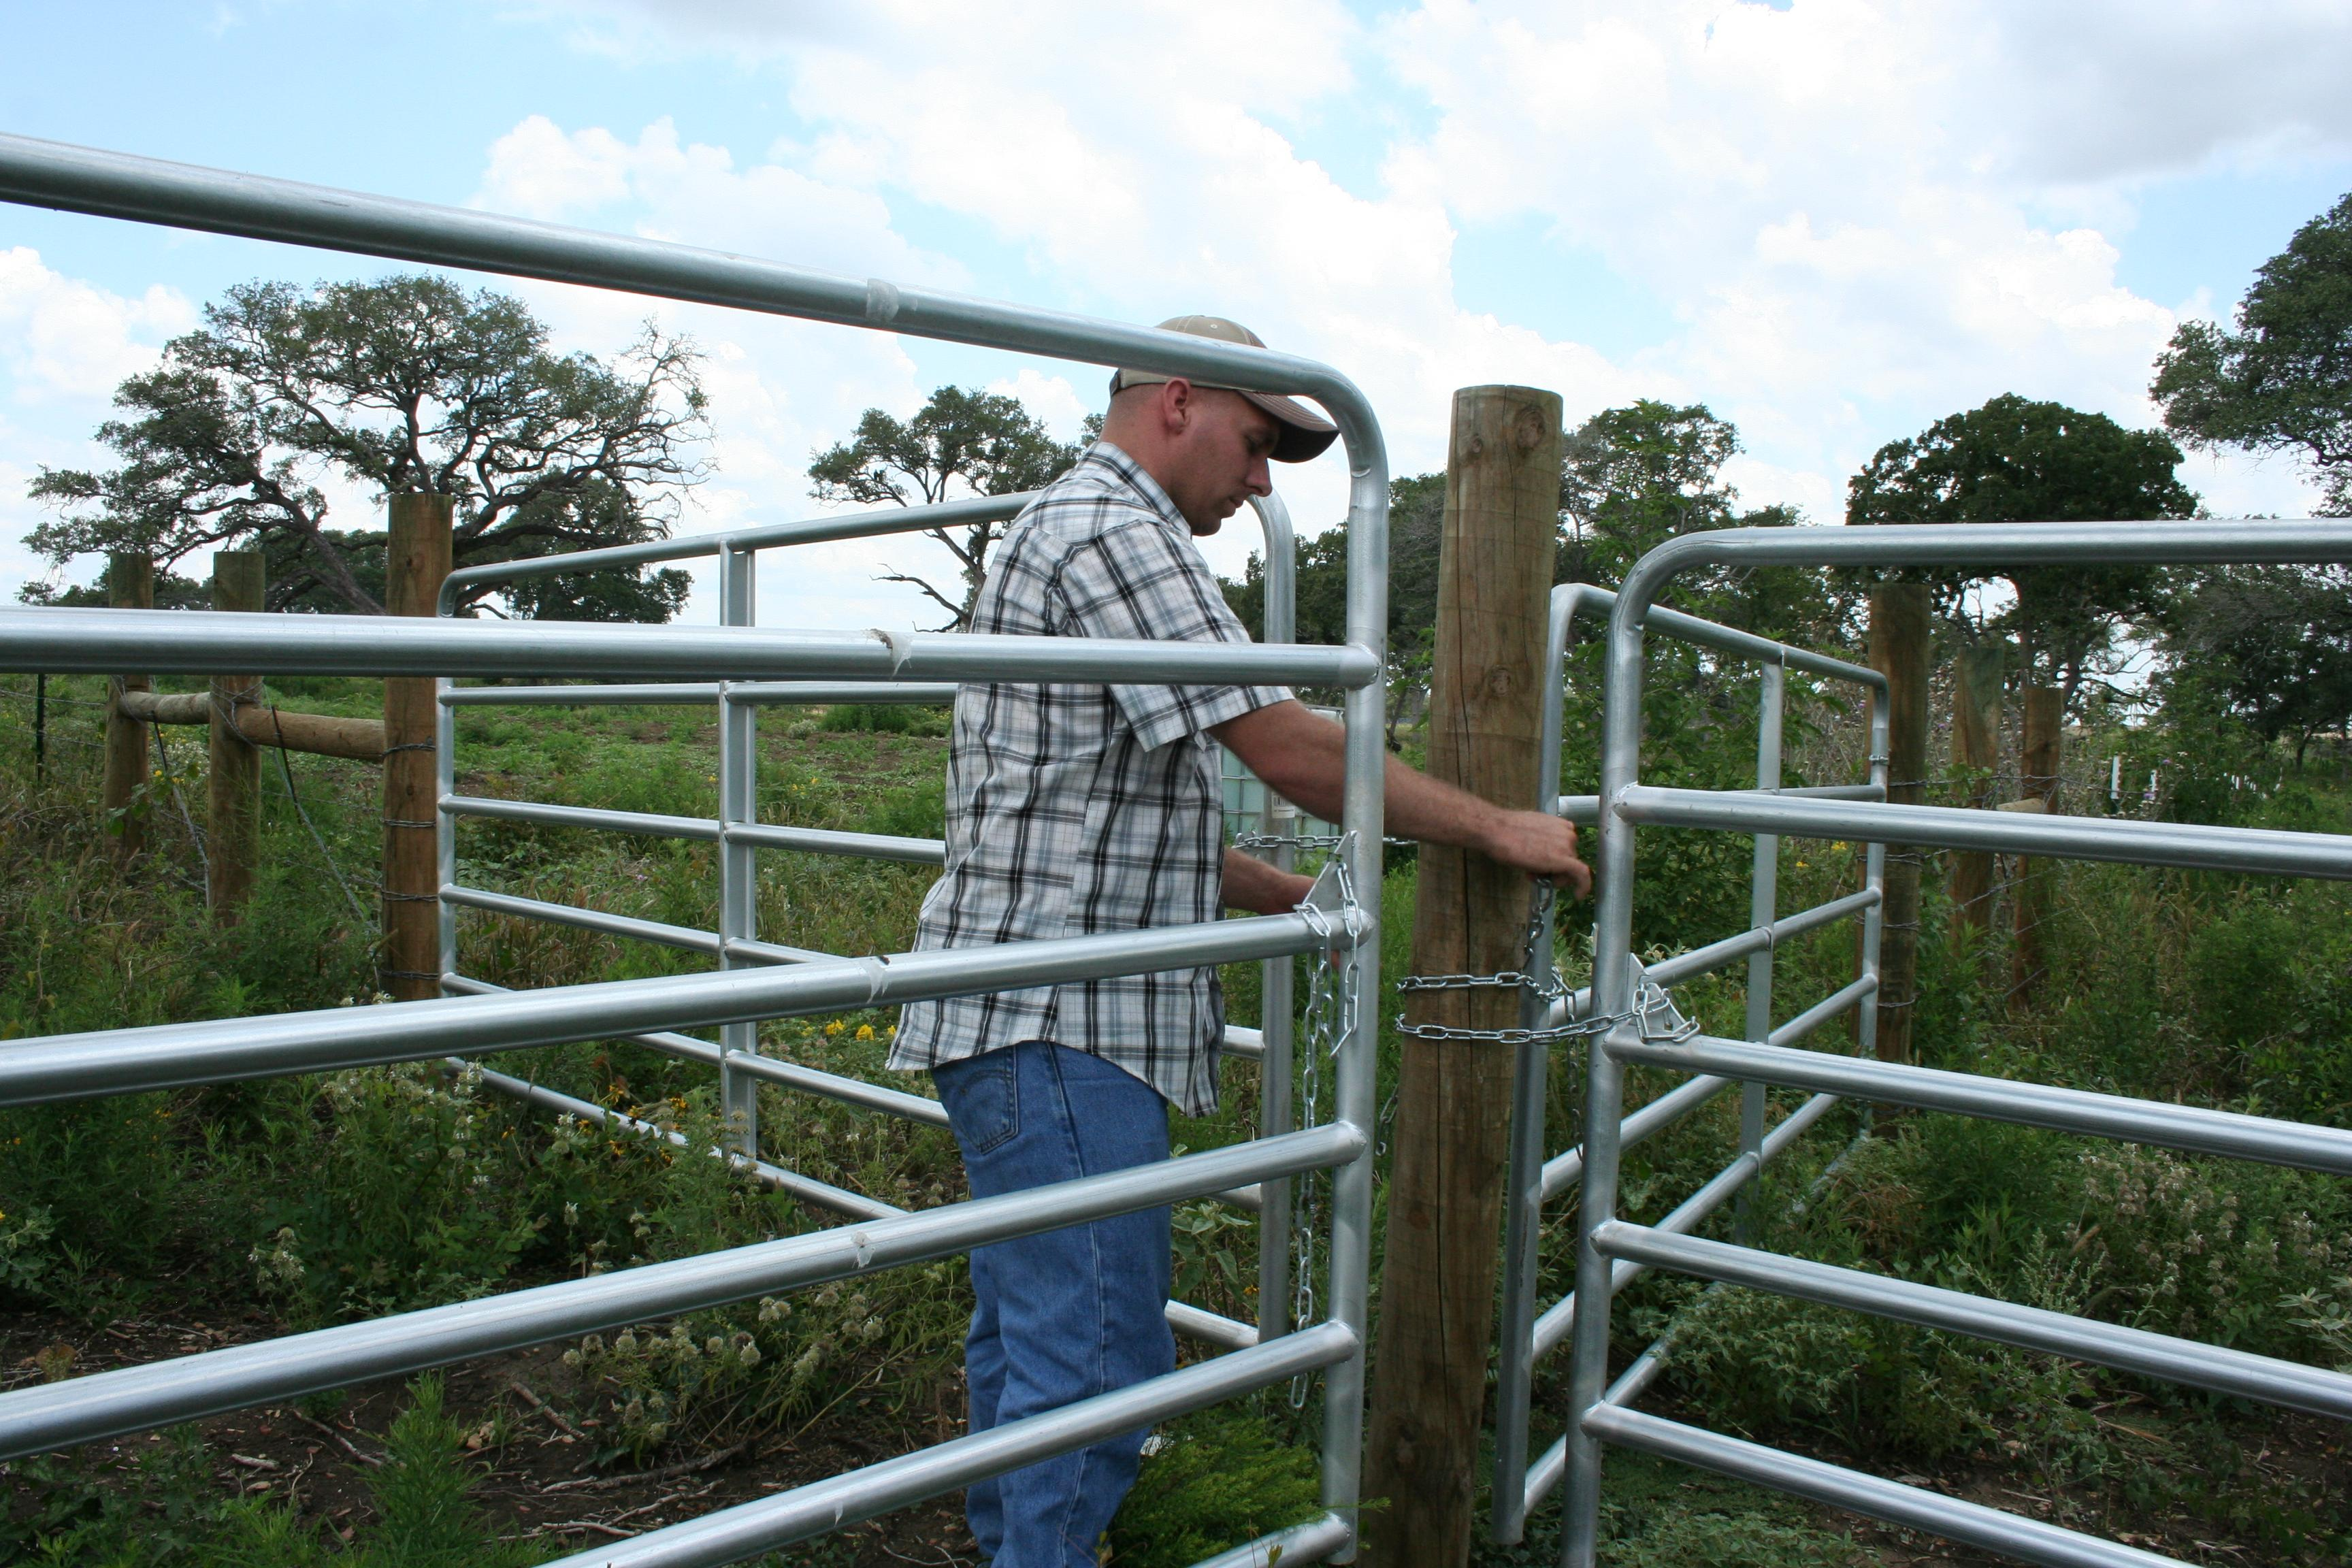 USDA goes the extra mile to help farmers such as Chris Barnes, who was able to handle paperwork for his conservation efforts on the farm while deployed.